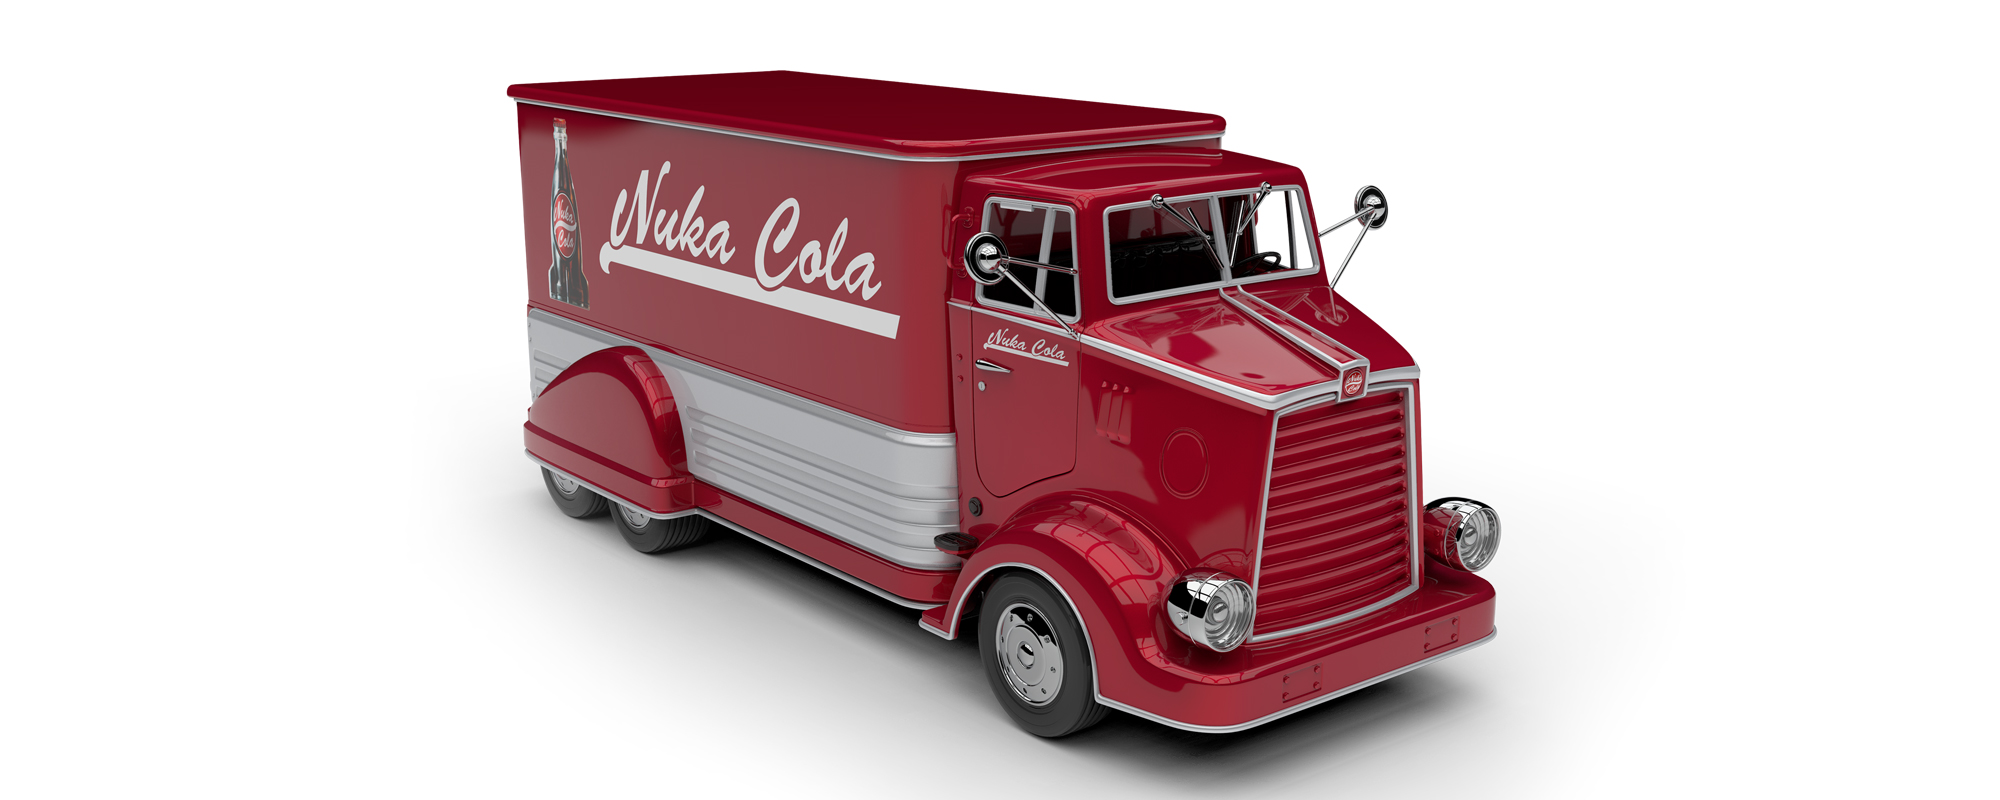 Nuka-Cola Delivery Truck